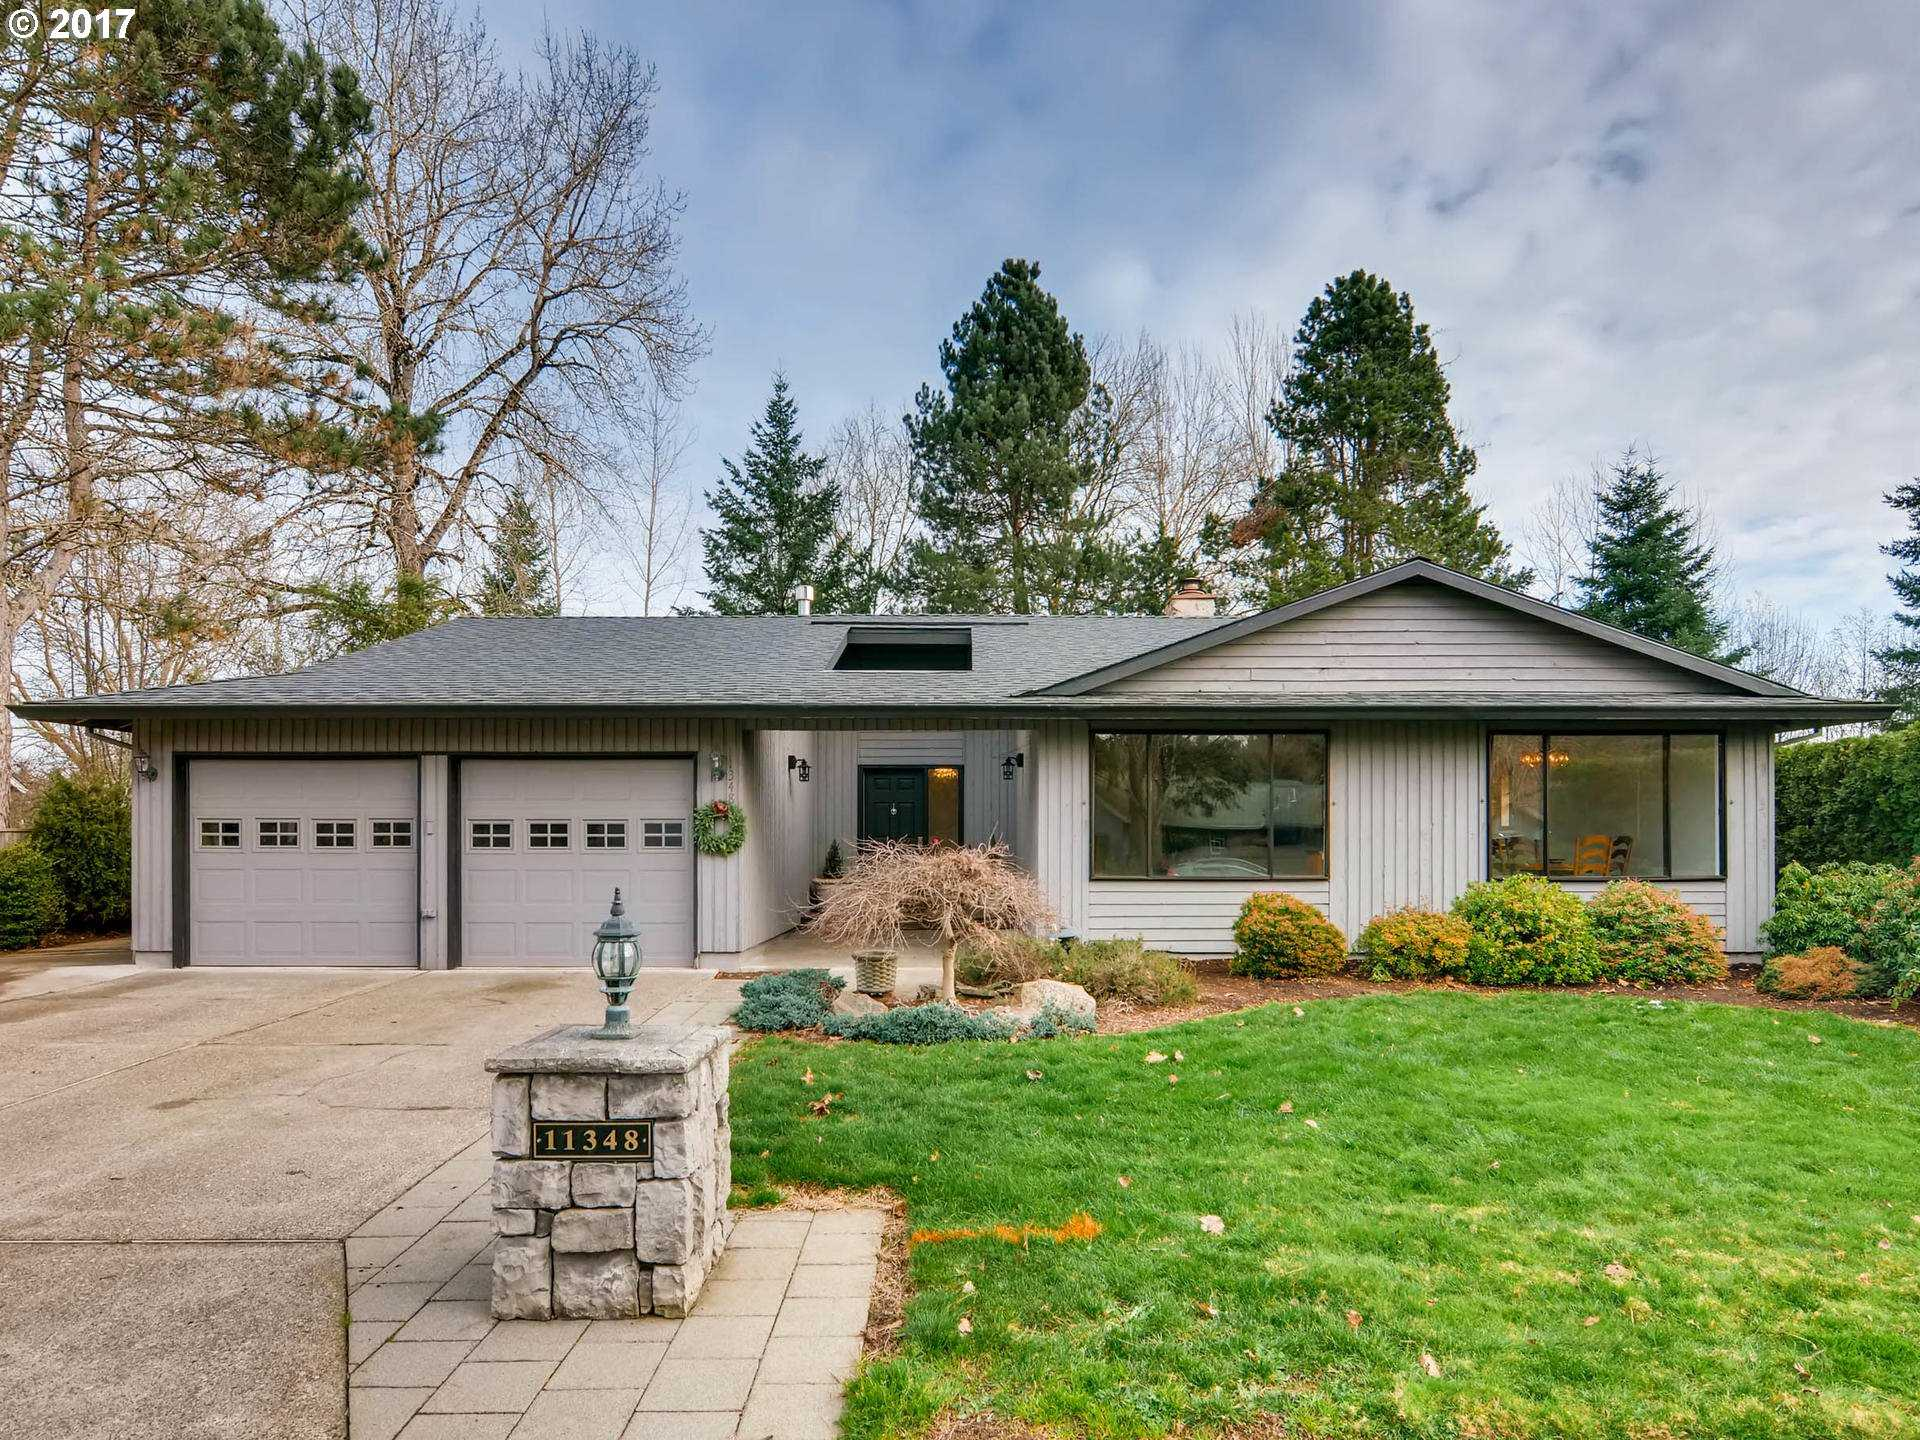 $425,000 - 4Br/2Ba -  for Sale in Englewood, Tigard